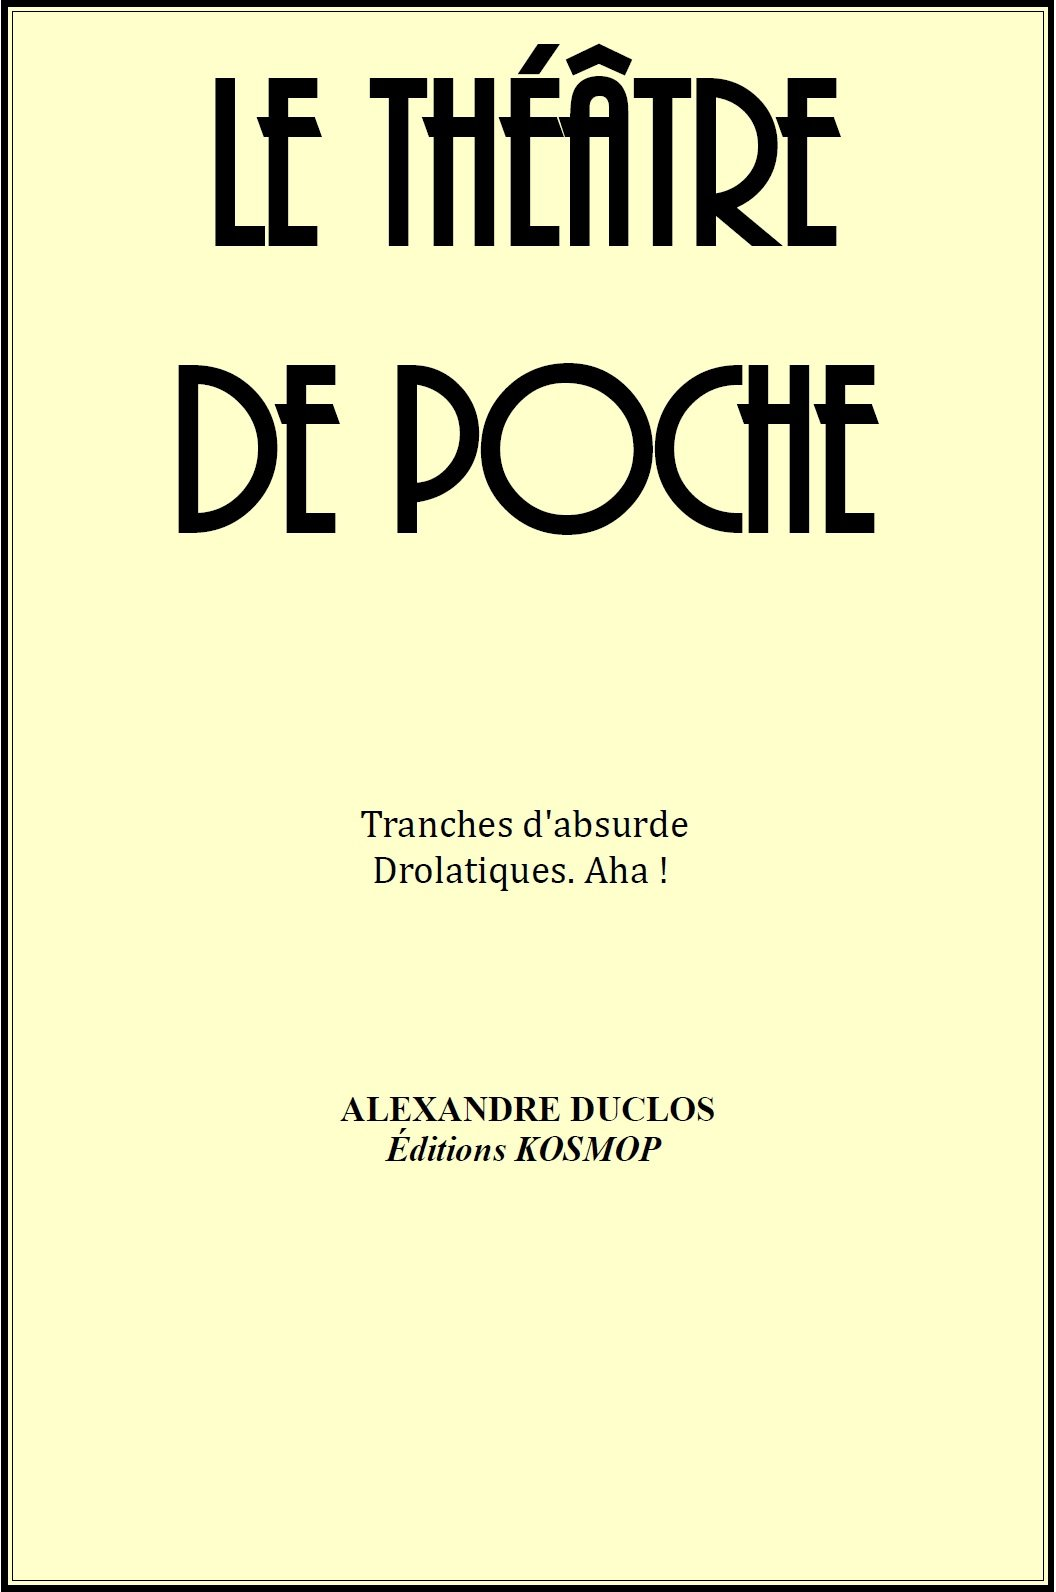 couverture-theatre-de-poche